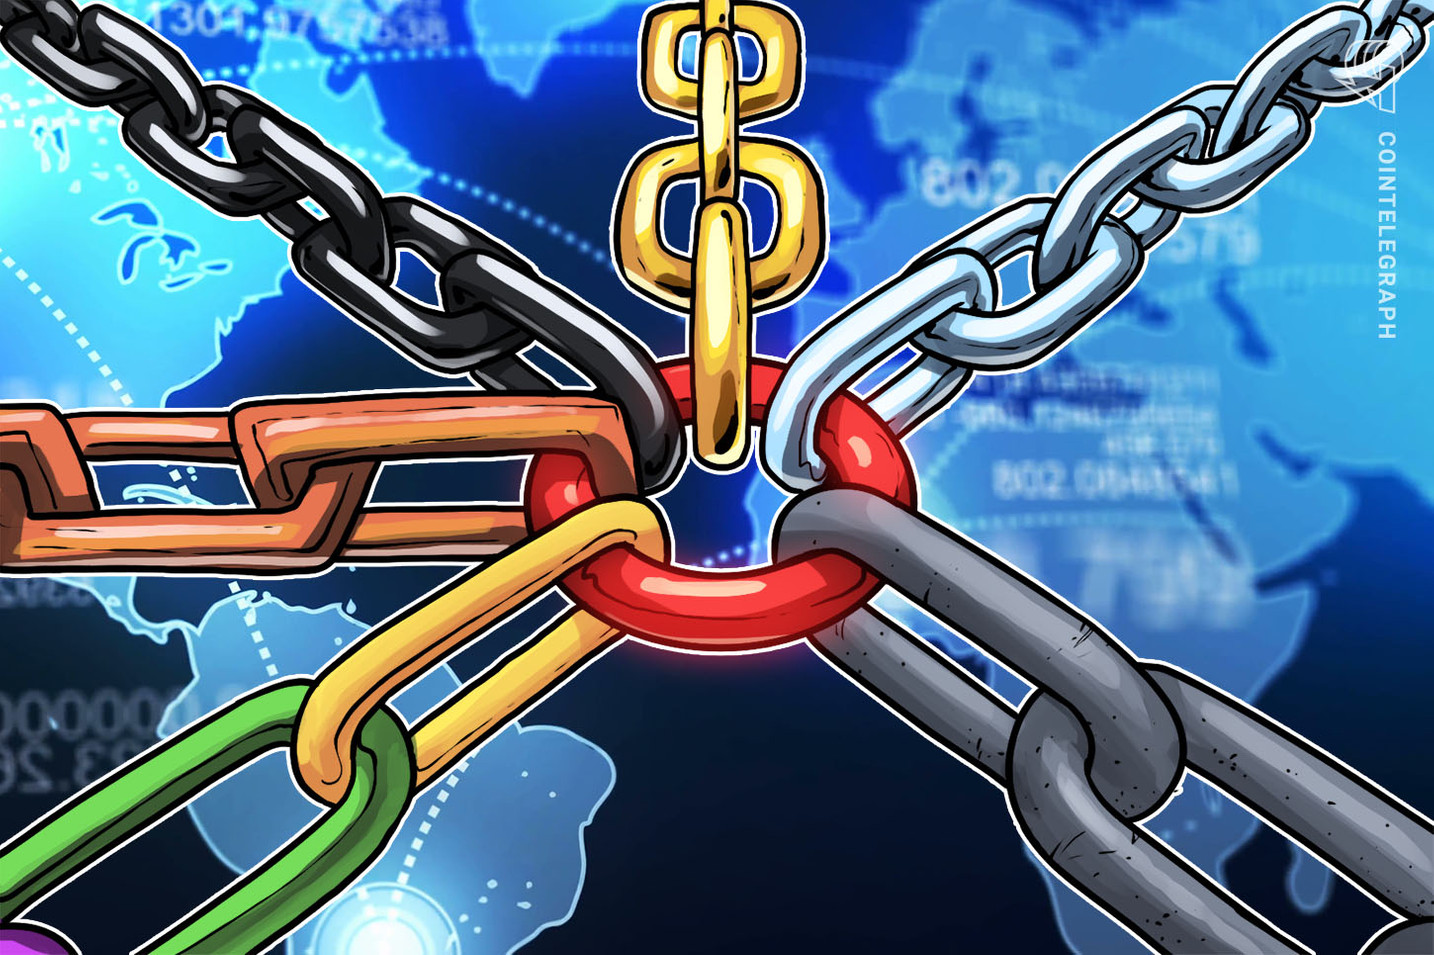 Scalable 'Blockchain' Network Seals $35 Million From Sequoia Capital, Huobi and Others